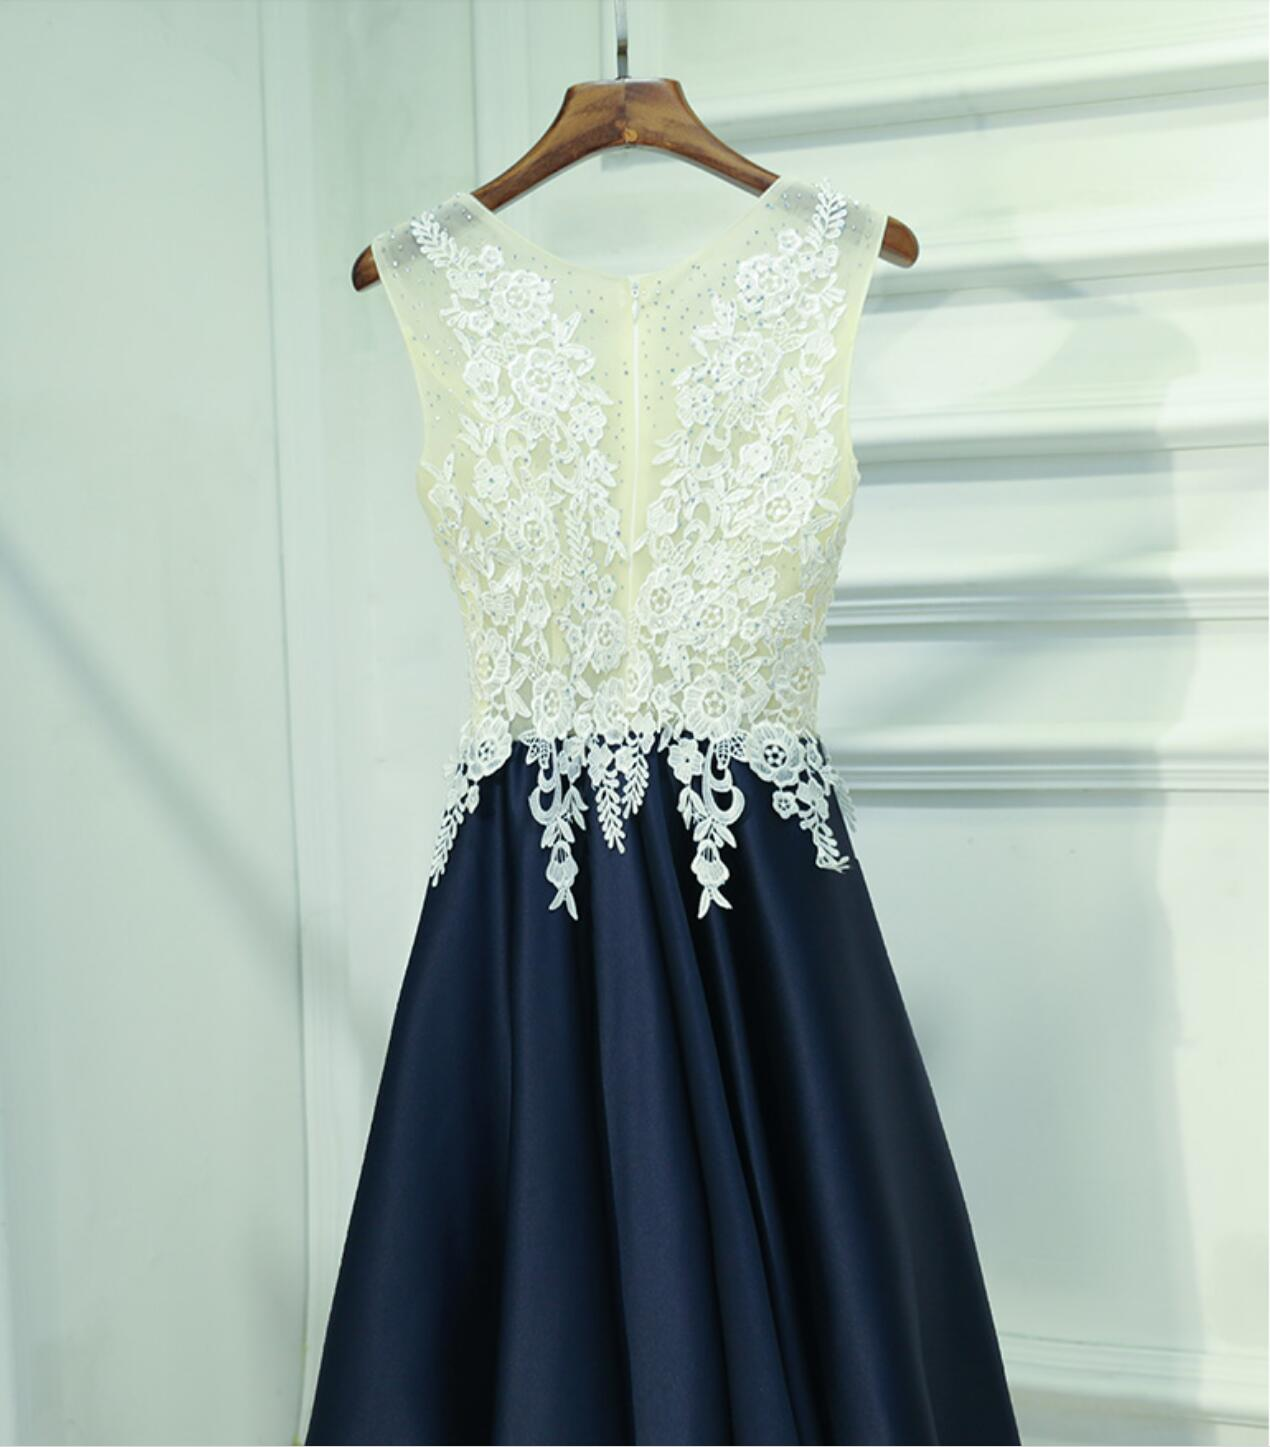 See Through Lace Navy Skirt Short Homecoming Prom Dresses ...